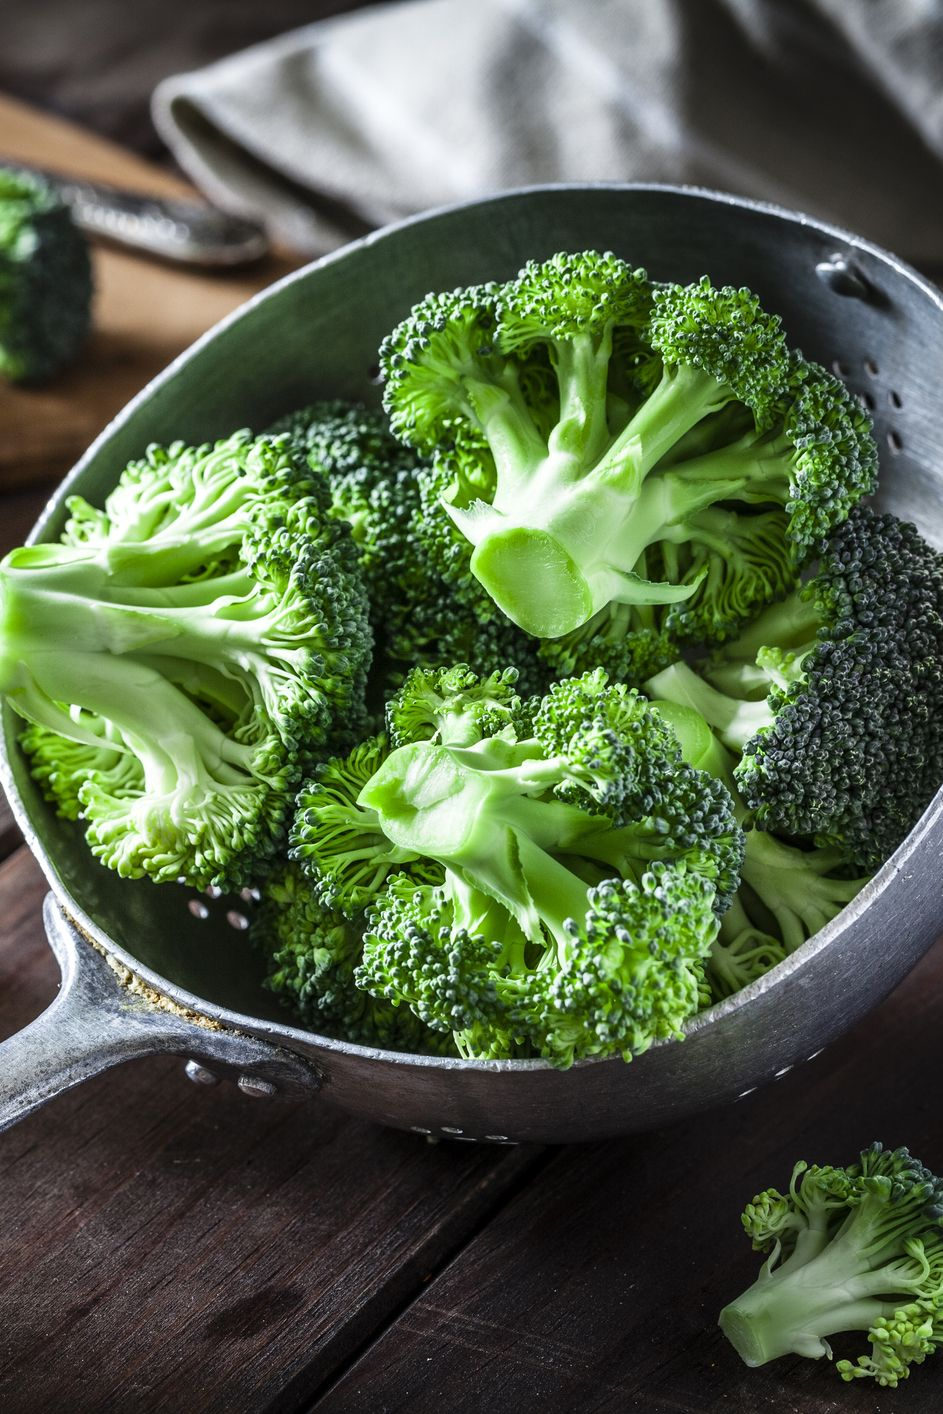 best foods for weight loss - broccoli